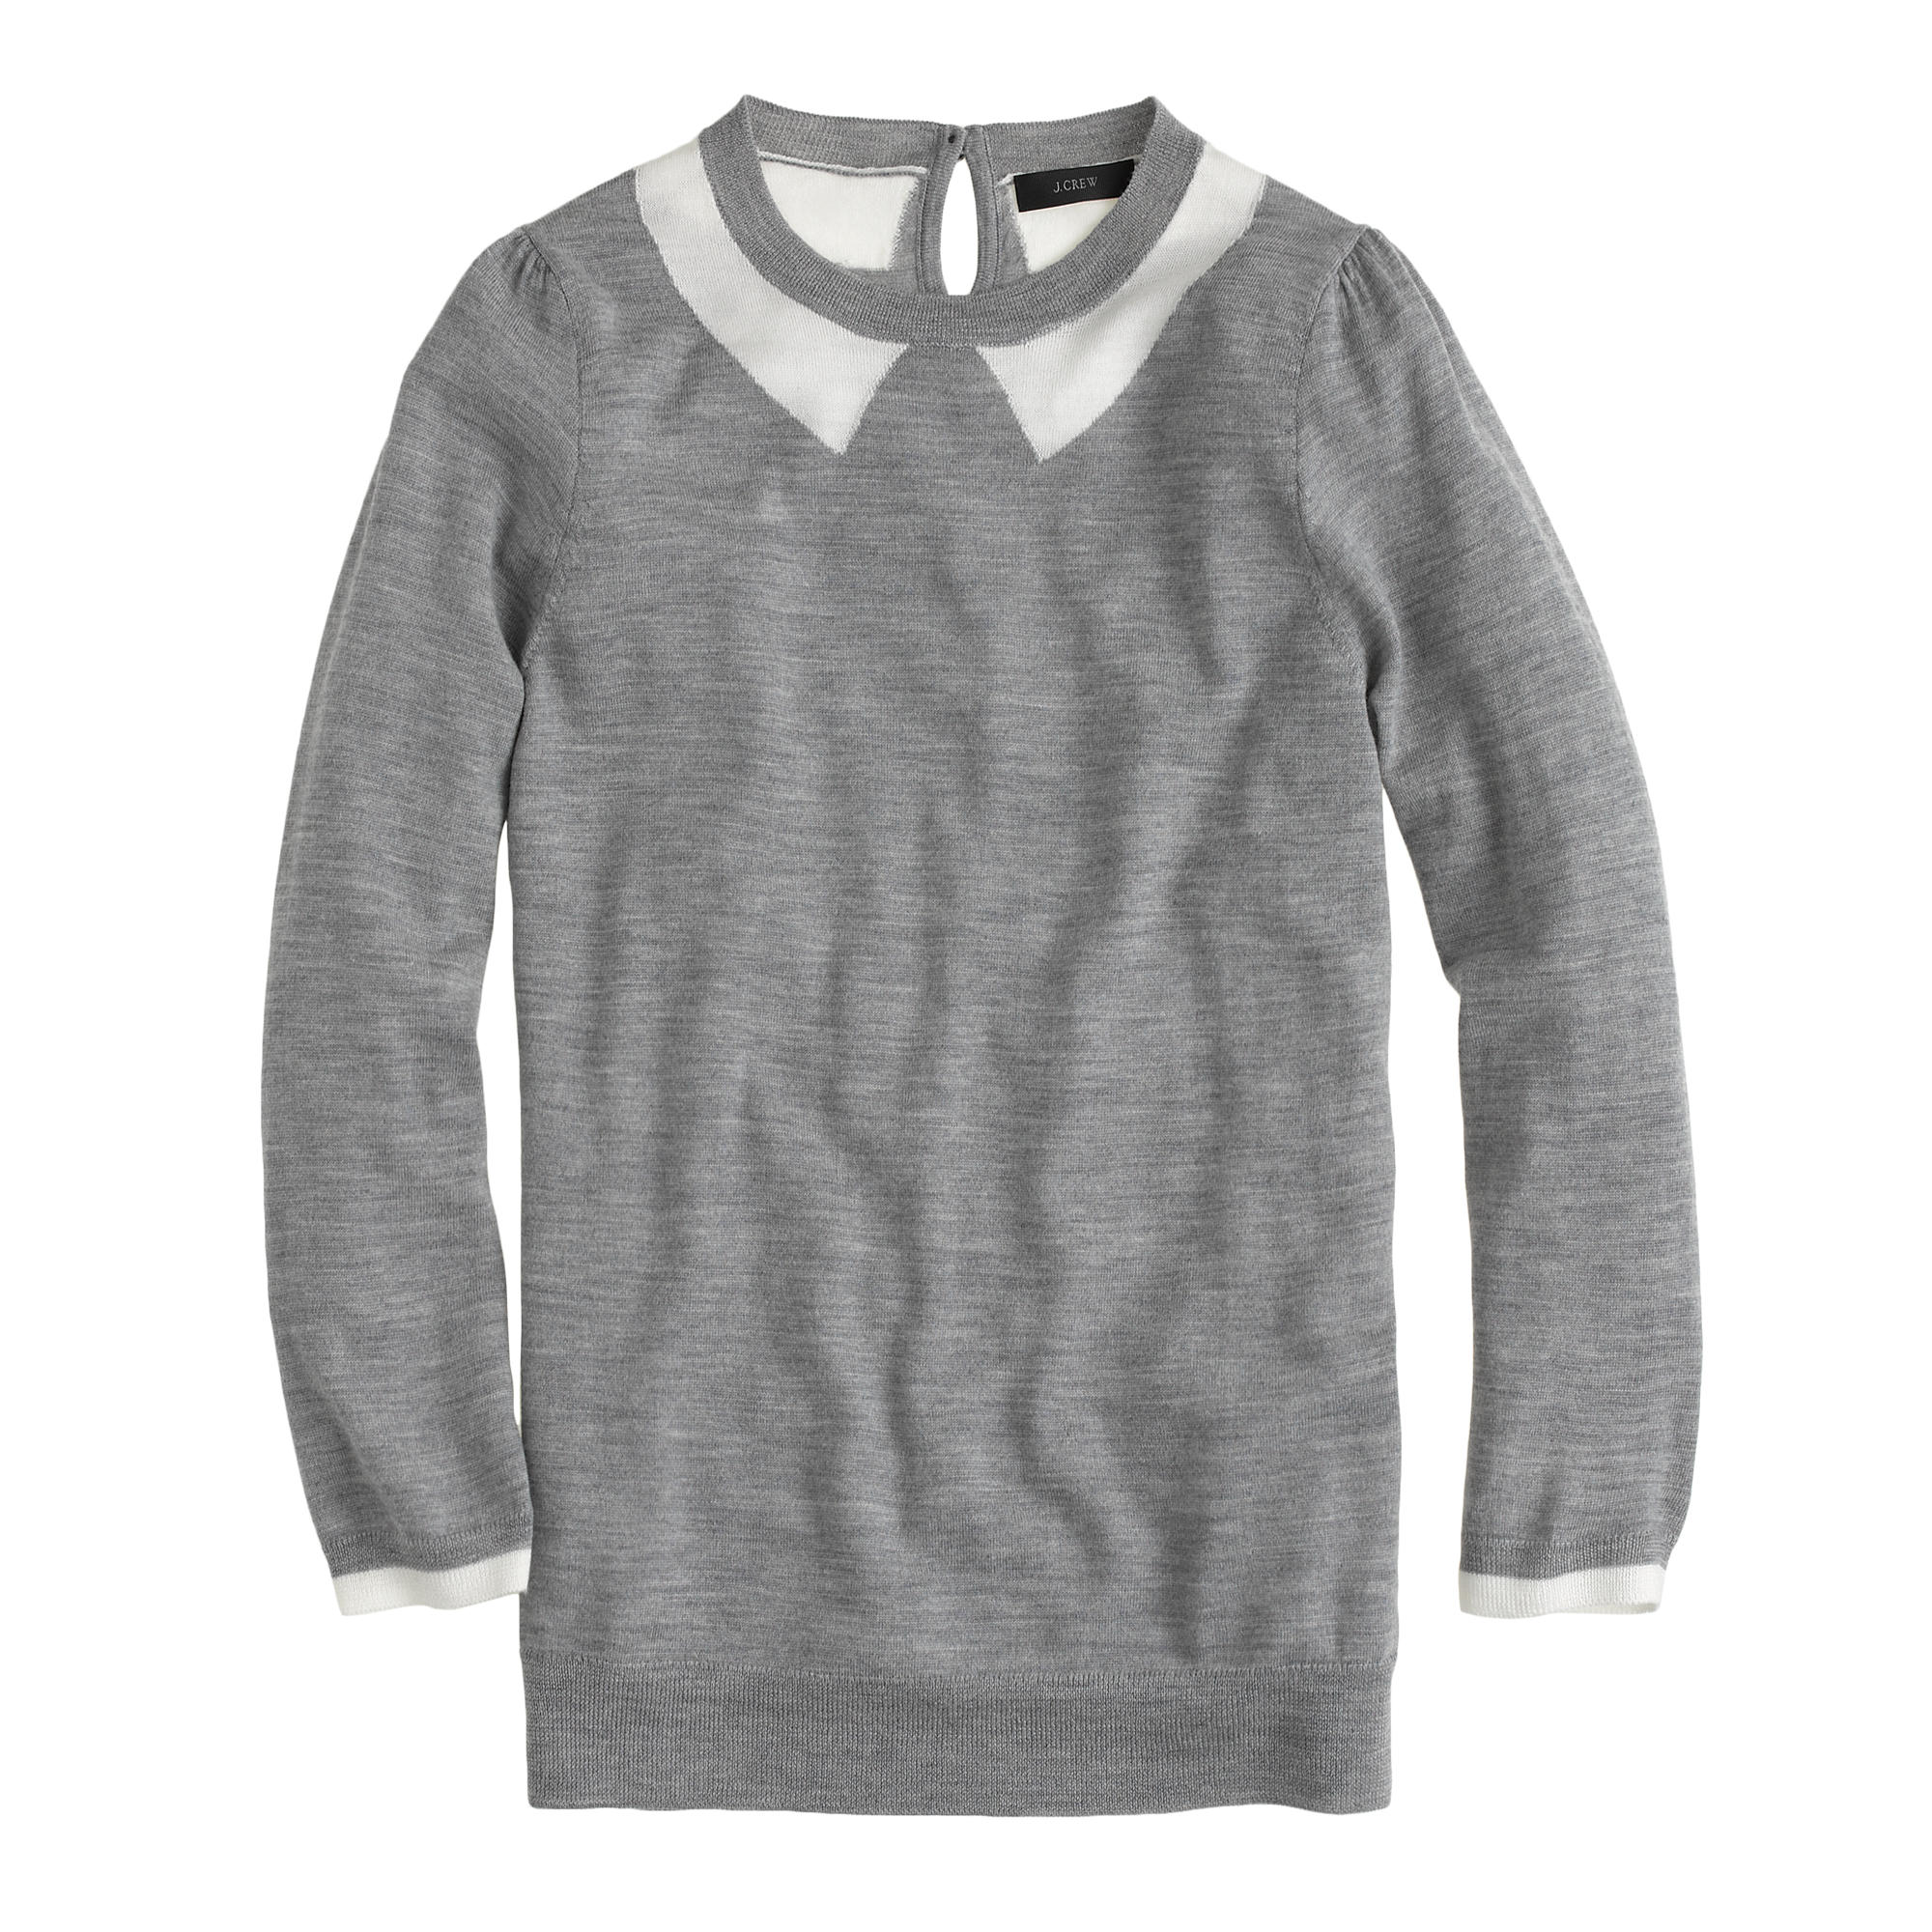 Trompe L Oeil Sweater 81